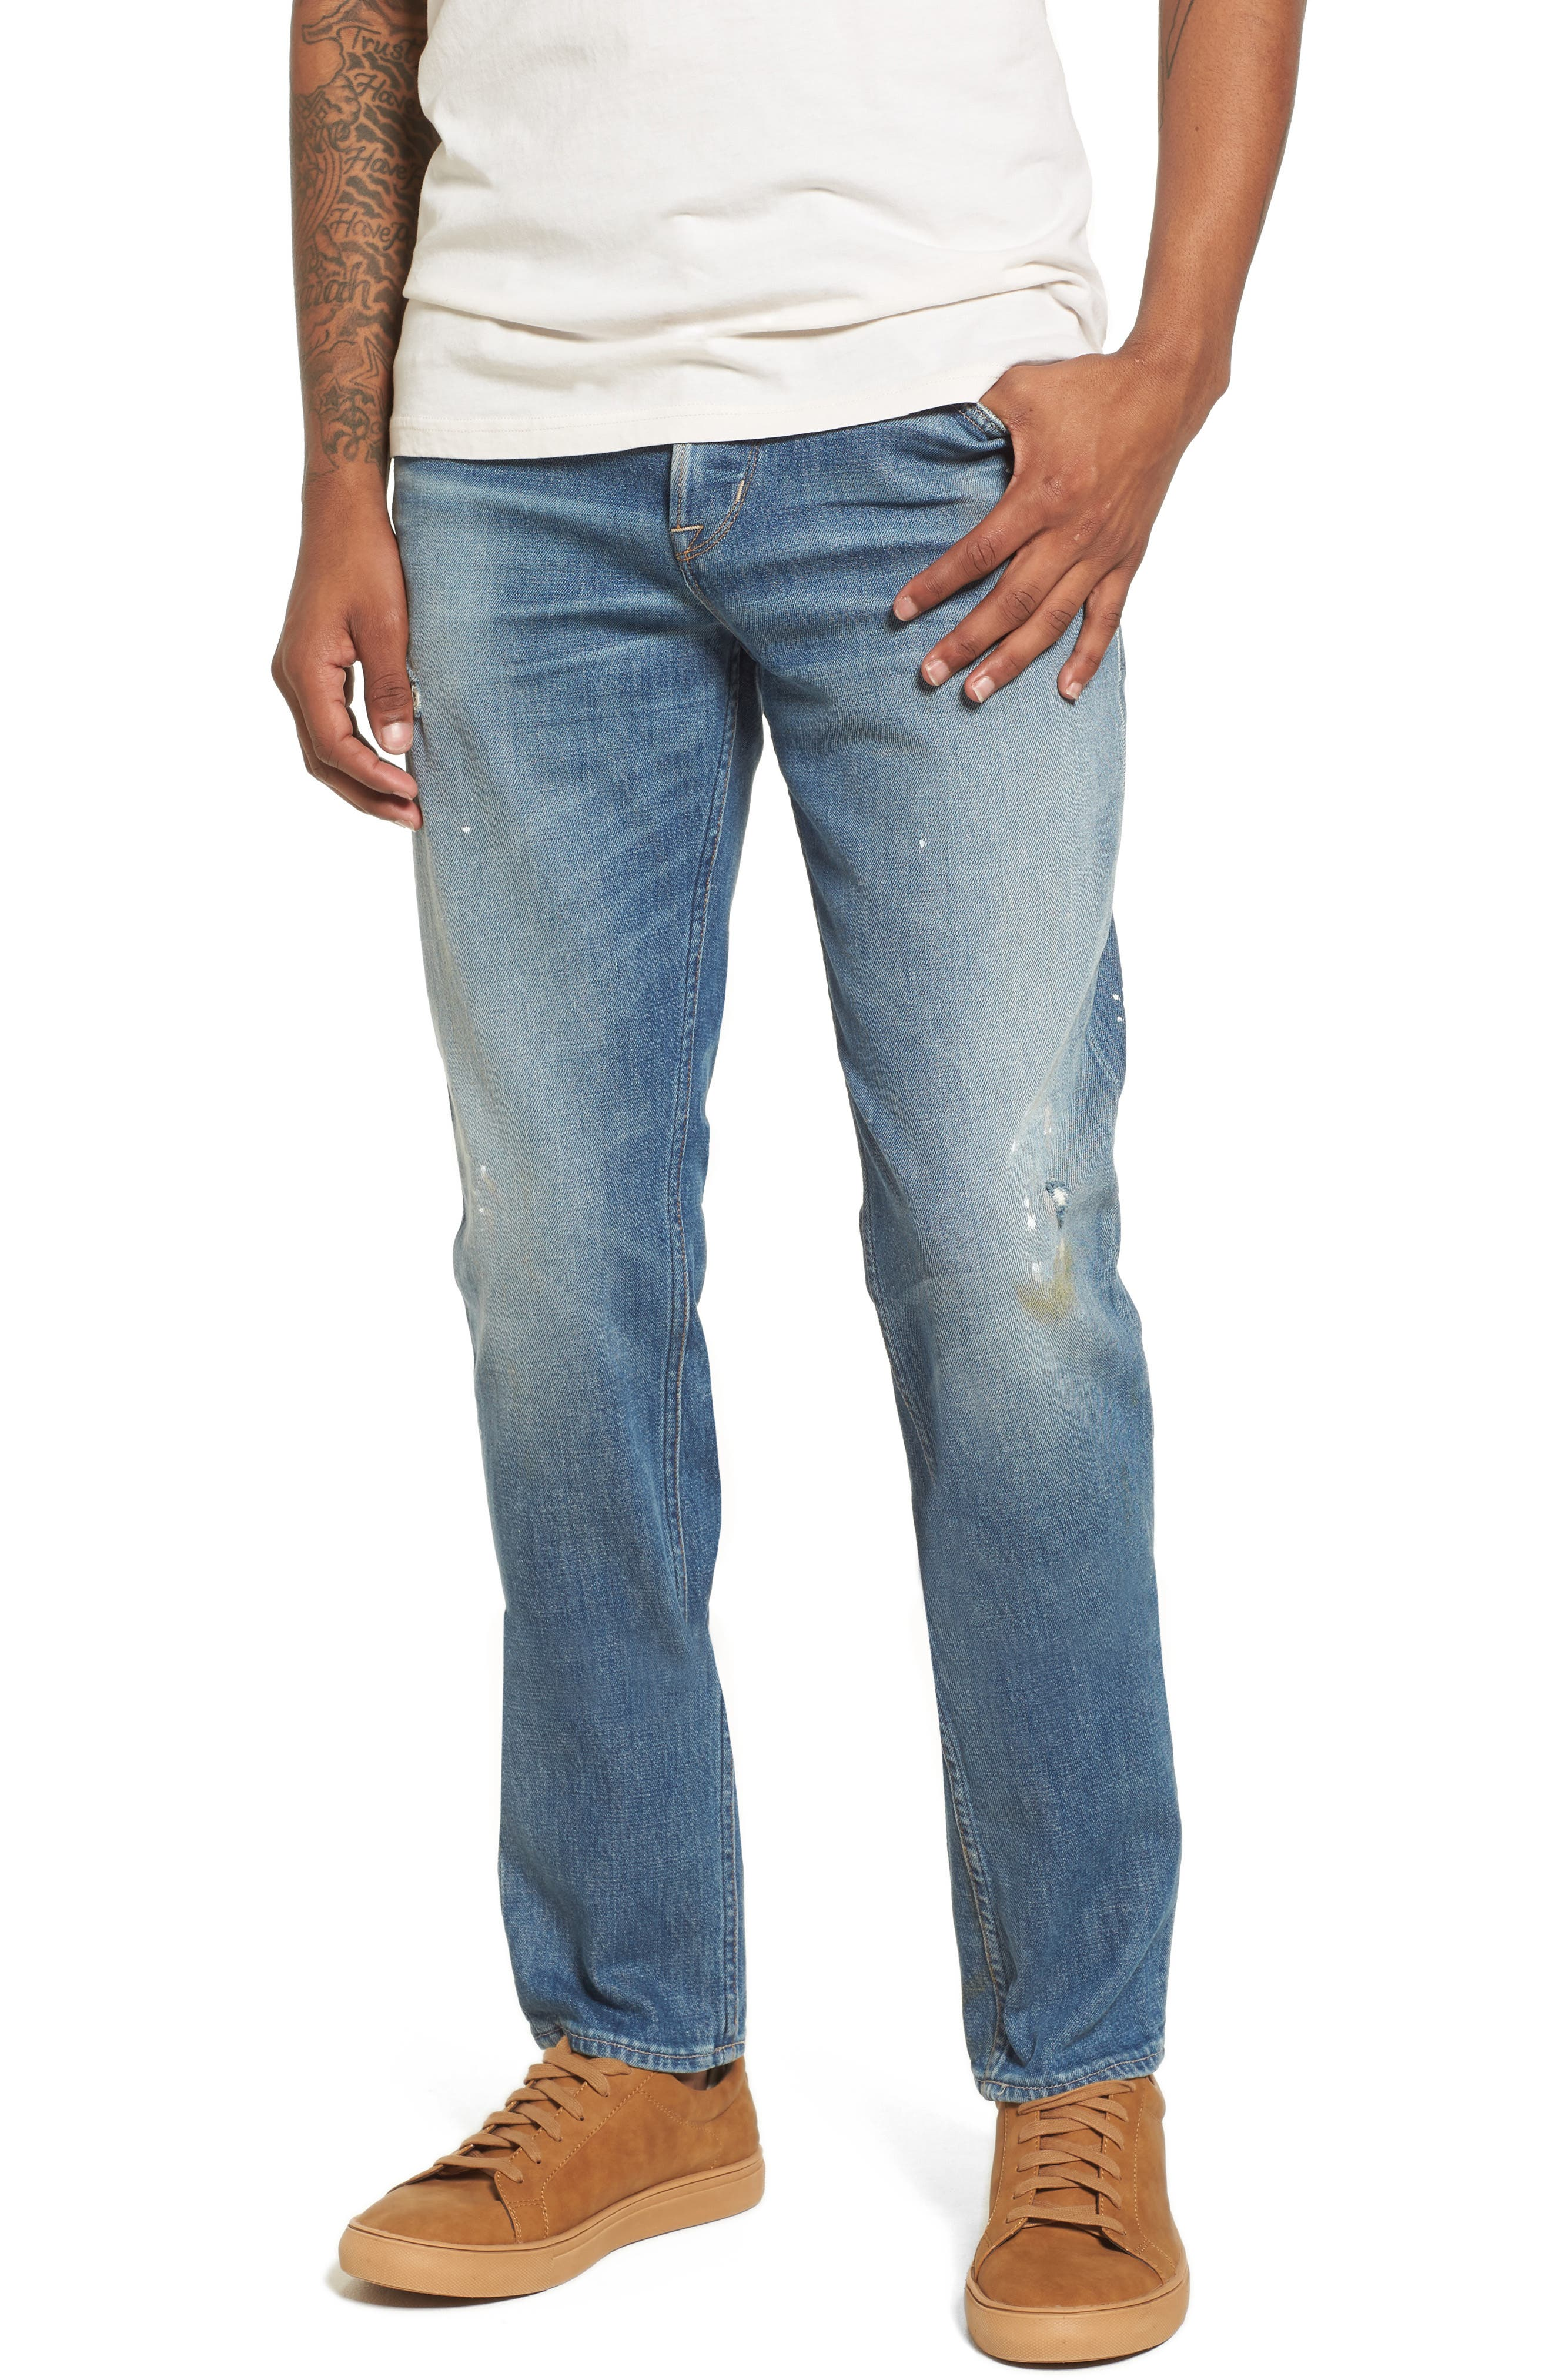 Axl Skinny Fit Jeans,                             Main thumbnail 1, color,                             450